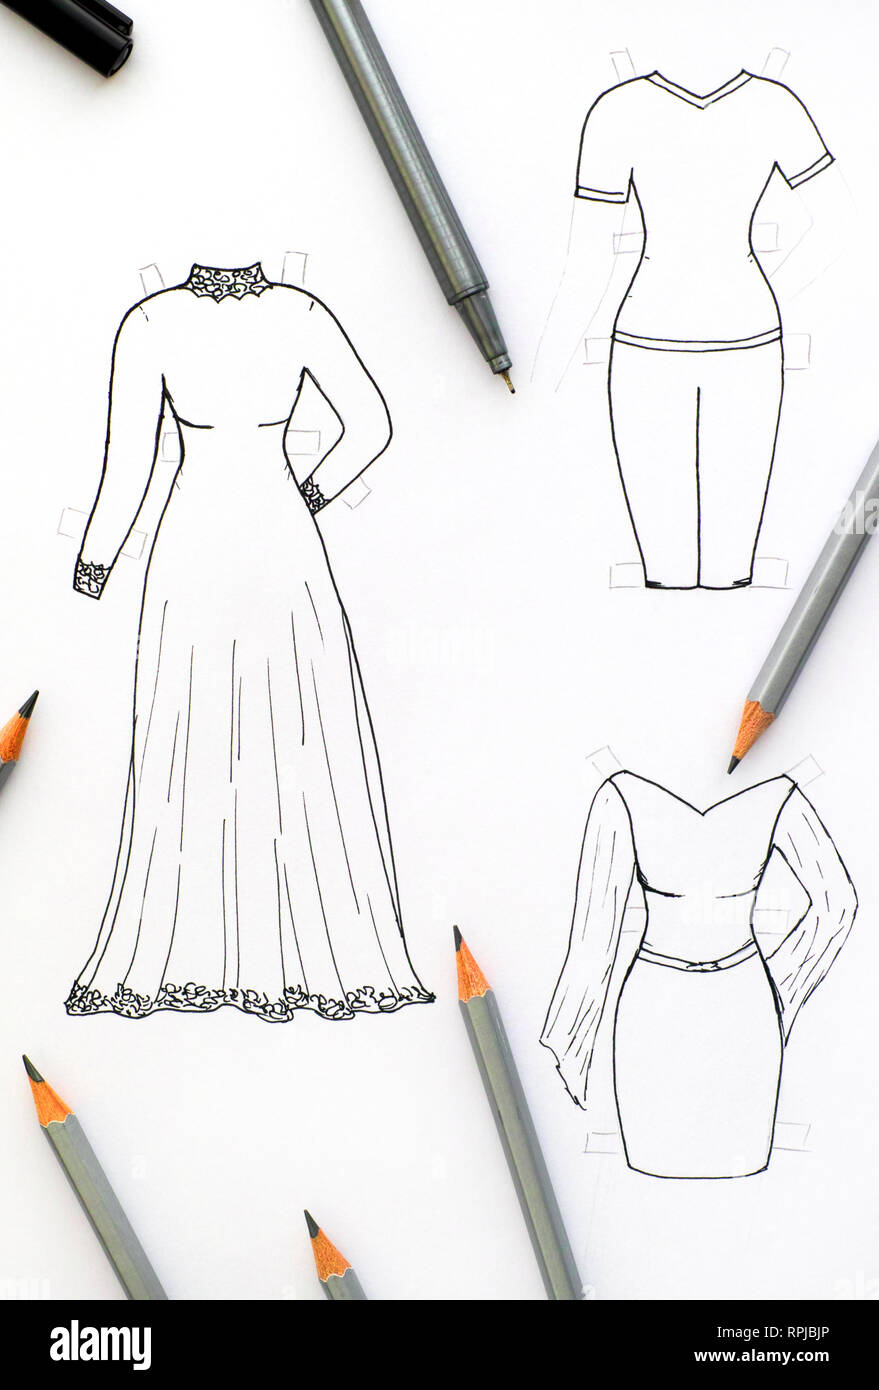 Hand drawing clothes for paper doll with black pen and pencils. - Stock Image